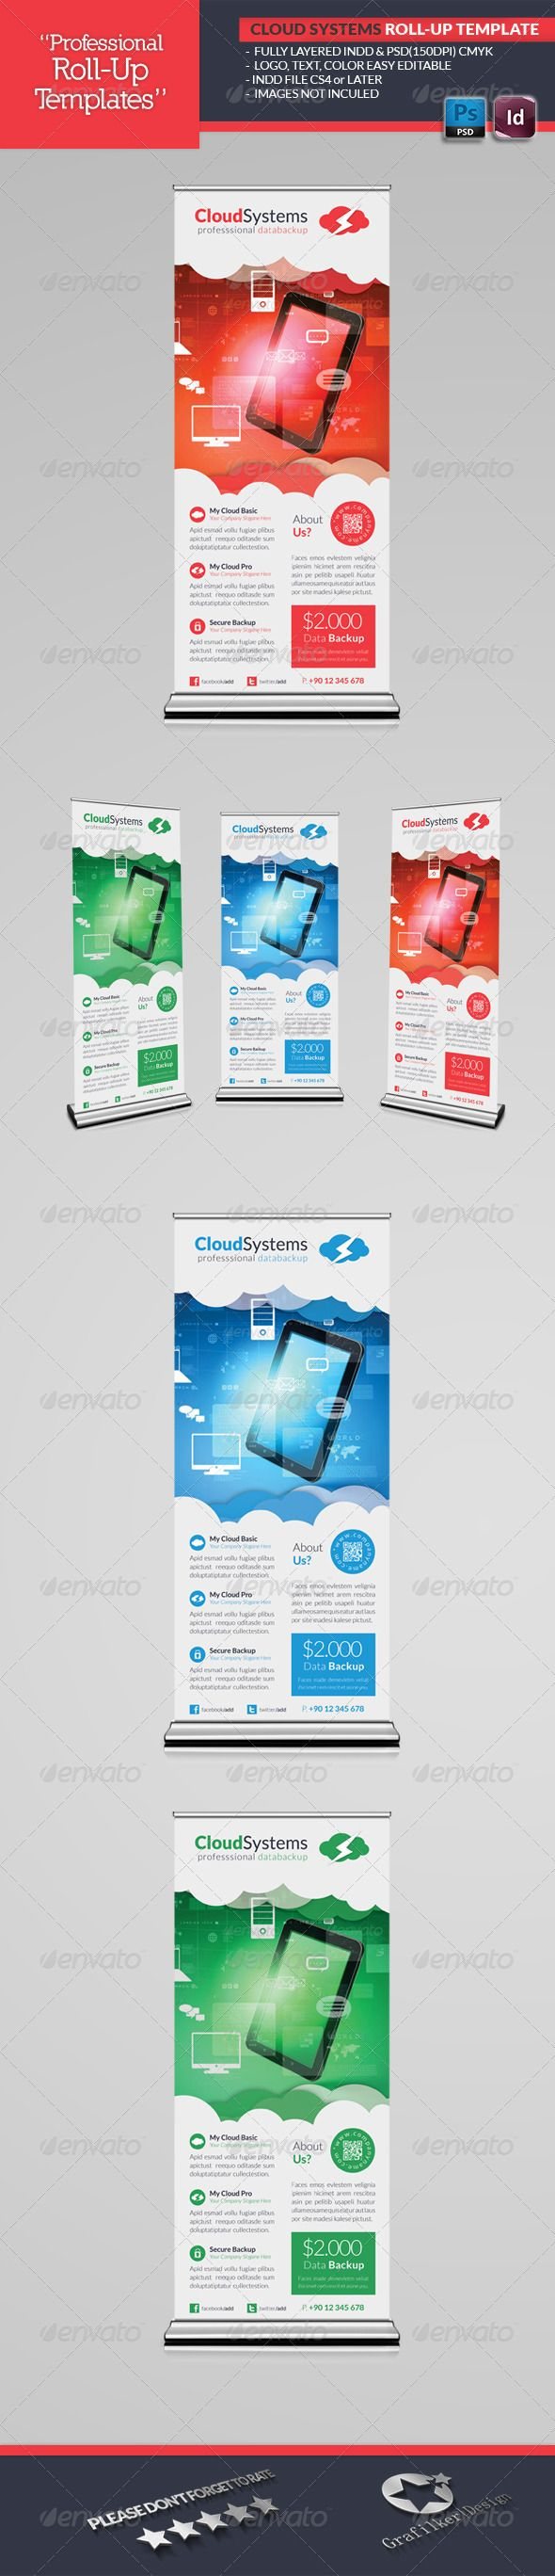 Cloud Systems RollUp Template — Photoshop PSD #monitoring #hosting • Available here → https://graphicriver.net/item/cloud-systems-rollup-template/4679485?ref=pxcr